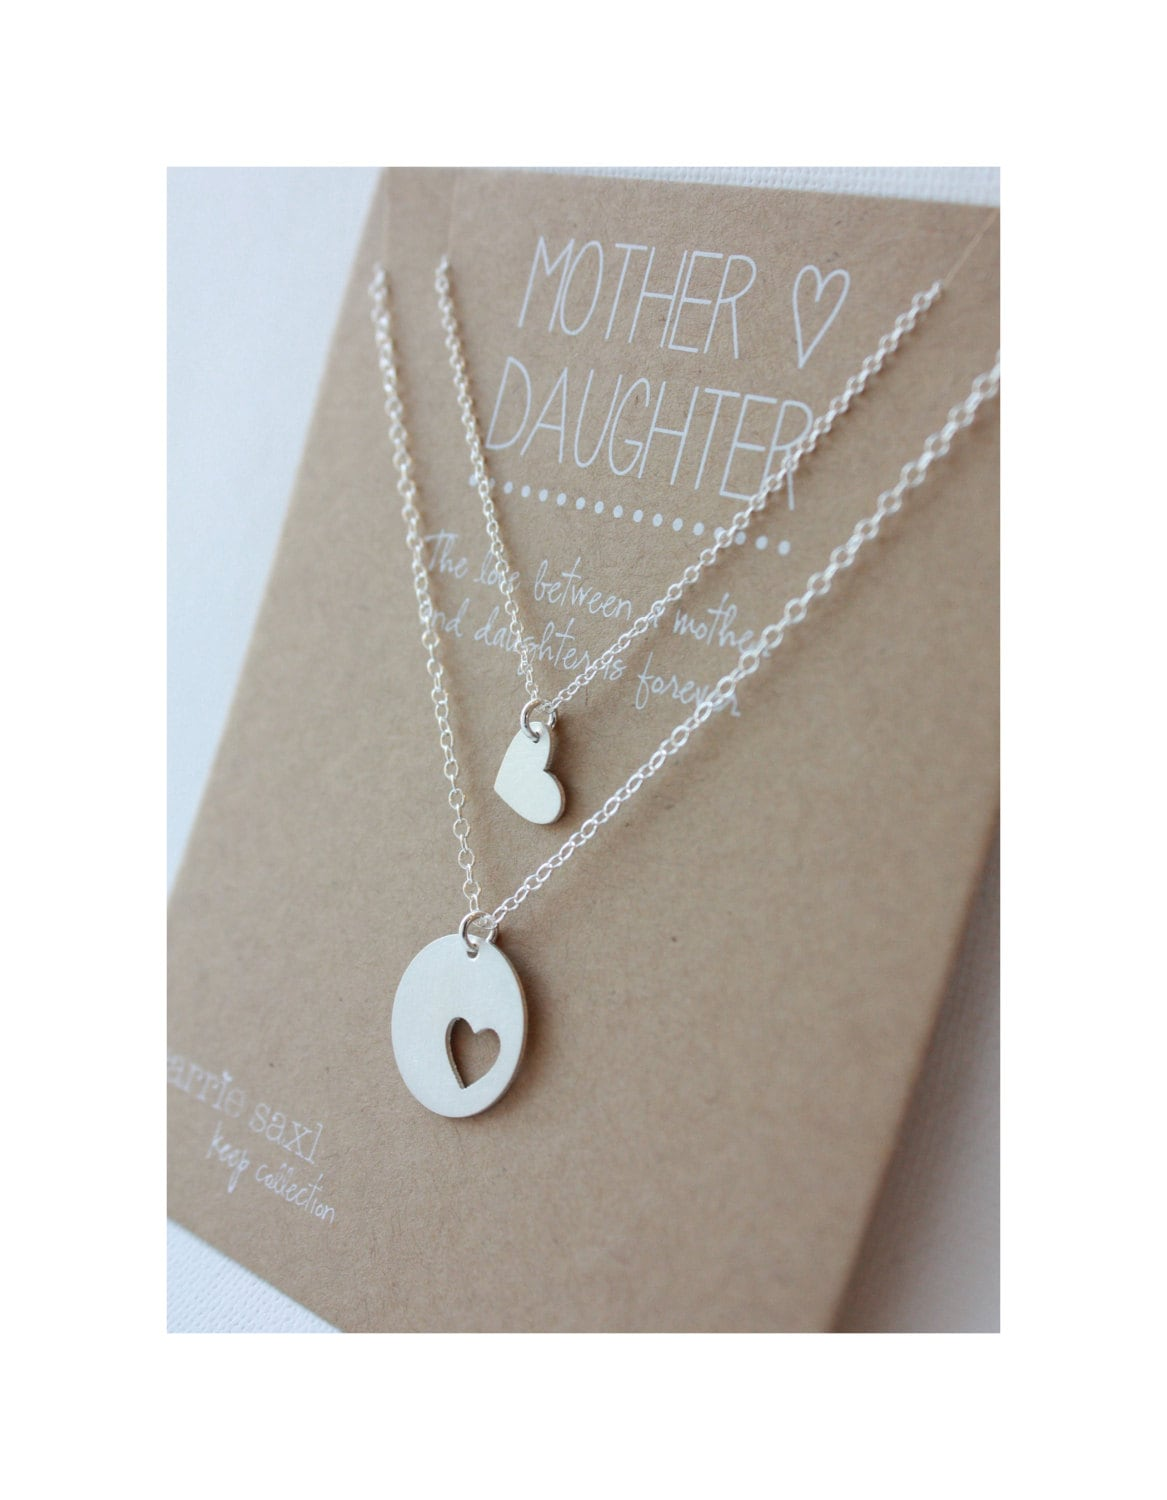 Mother daughter necklace set mom jewelry gift mother zoom aloadofball Images